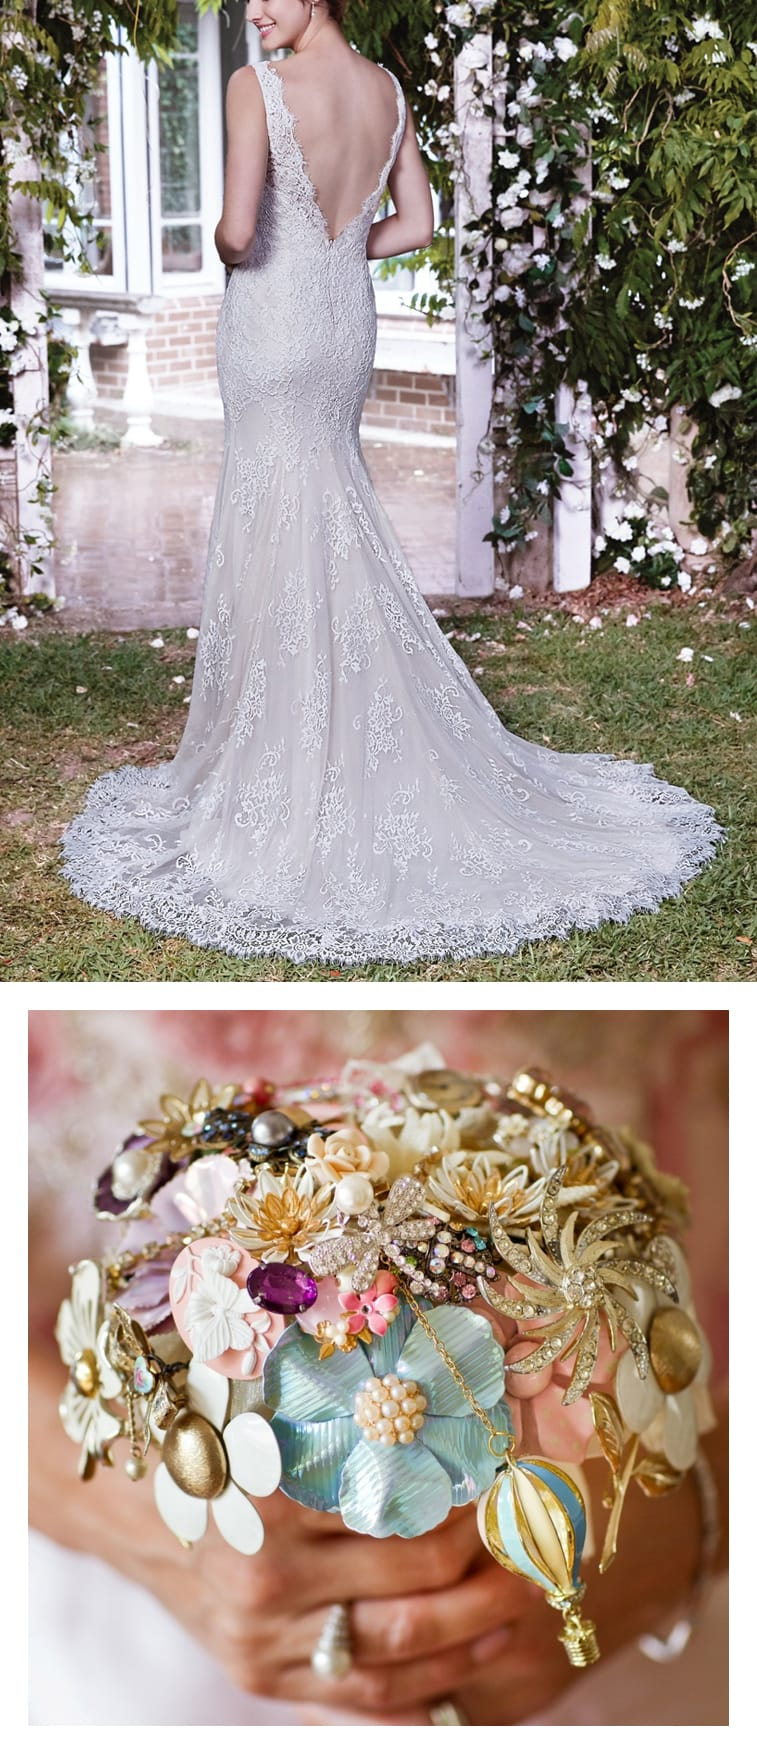 9 Bouquets For Your Boho Wedding Gown - Boho lace wedding dress with long train Lauren by Rebecca Ingram paired with a brooch bouquet.